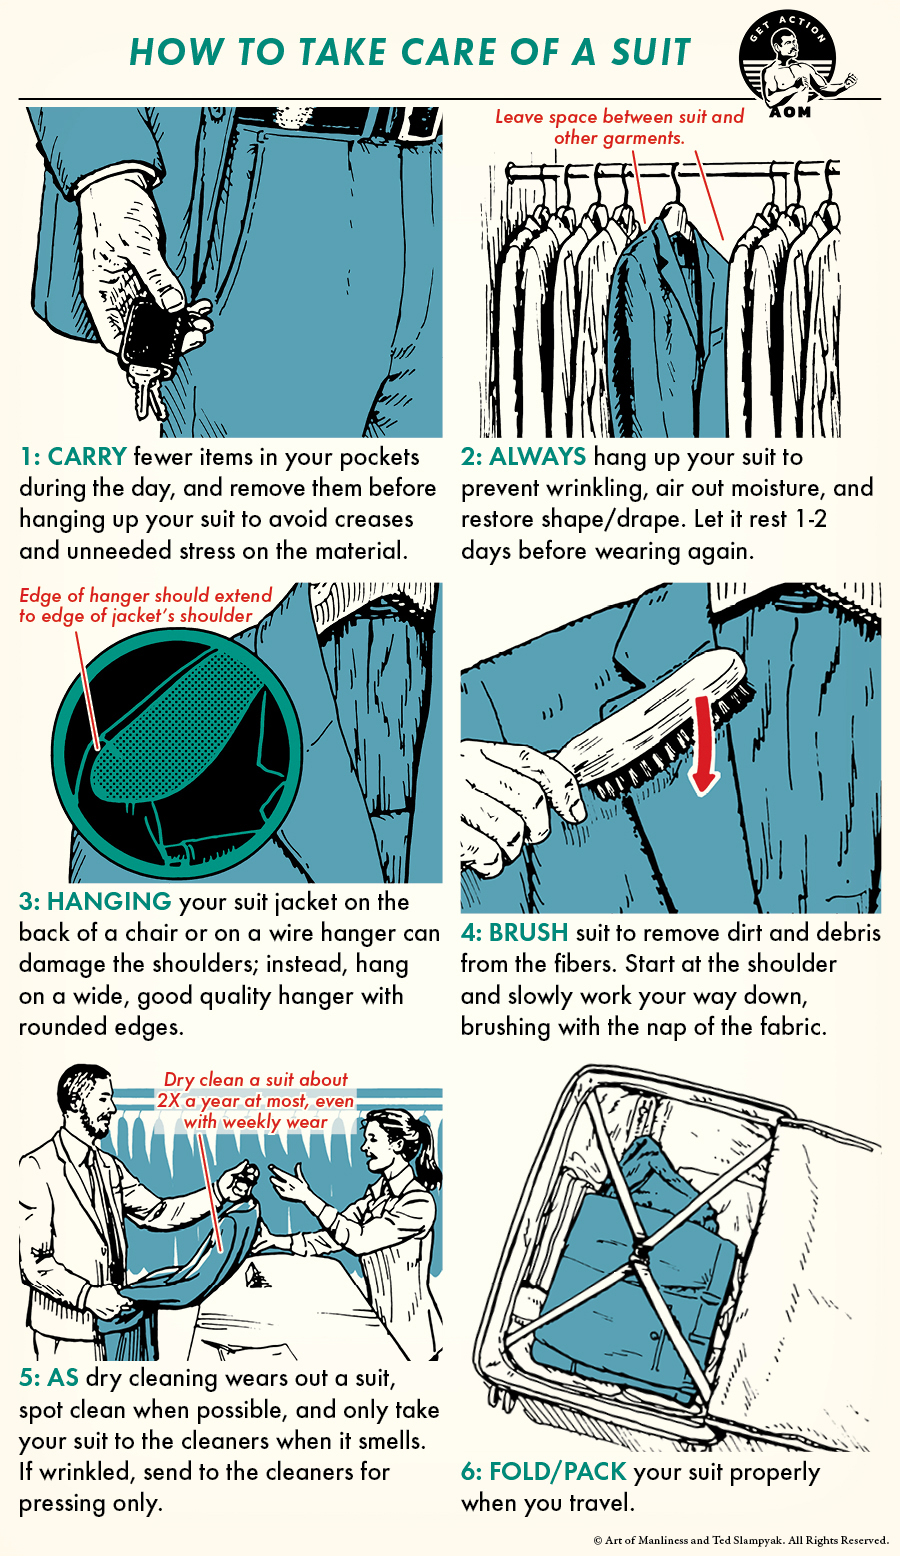 How to take care of a suit comic guide.